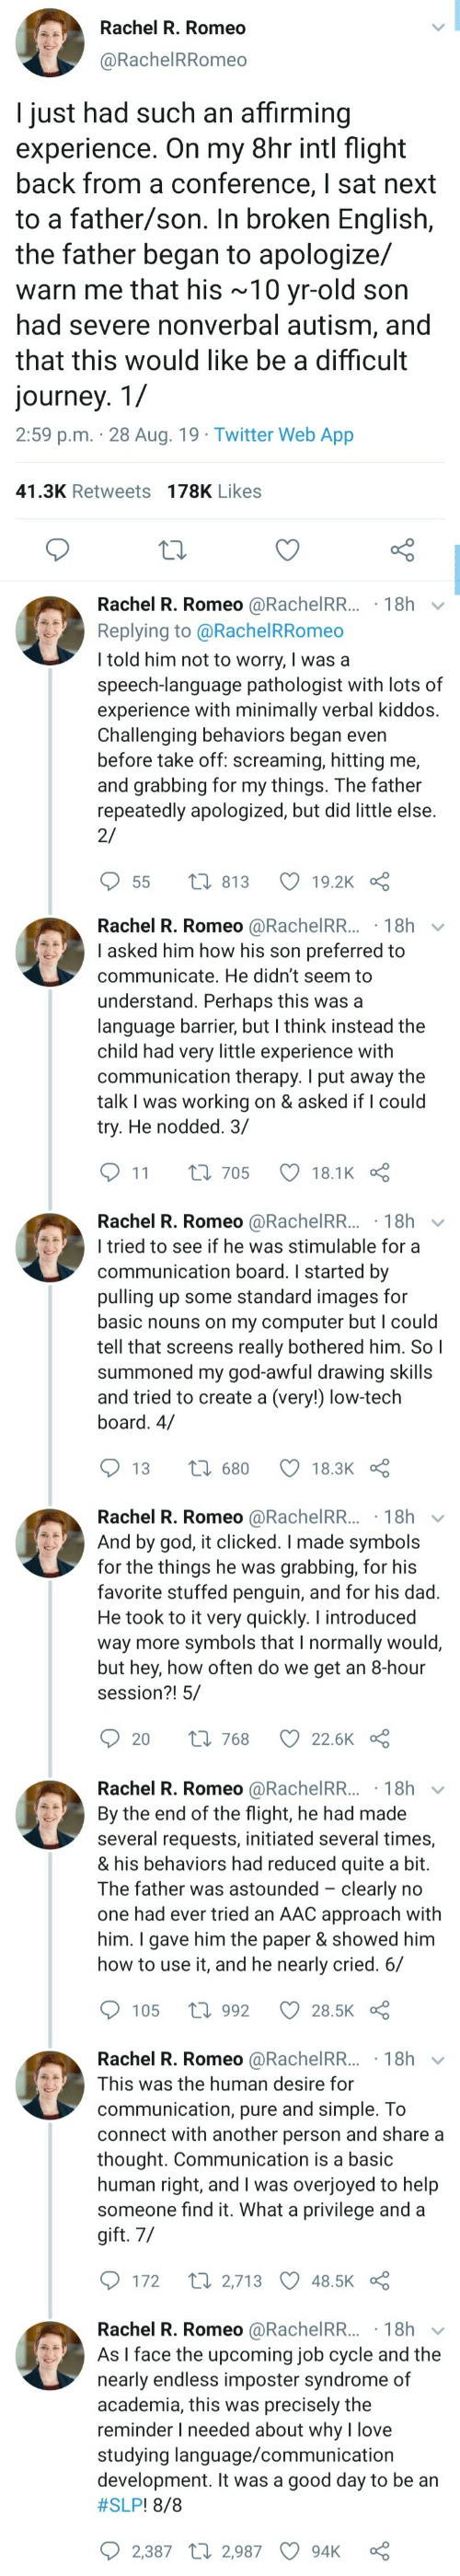 create a: Rachel R. Romeo  @RachelRRomeo  I just had such an affirming  experience. On my 8hr intl flight  back from a conference, I sat next  to a father/son. In broken English,  the father began to apologize/  warn me that his ~10 yr-old son  had severe nonverbal autism, and  that this would like be a difficult  journey. 1/  2:59 p.m. 28 Aug. 19 Twitter Web App  41.3K Retweets 178K Likes  Rachel R. Romeo @RachelRR... 18h  Replying to @Rachel RRomeo  I told him not to worry, I was a  speech-language pathologist with lots of  experience with minimally verbal kiddos.  Challenging behaviors began even  before take off: screaming, hitting me,  and grabbing for my things. The father  repeatedly apologized, but did little else  2/  t 813  19.2K  55   Rachel R. Romeo @RachelRR...18h  I asked him how his son preferred to  communicate. He didn't seem to  understand. Perhaps this was a  language barrier, but I think instead the  child had very little experience with  communication therapy. I put away the  talk I was working on & asked if I could  try. He nodded. 3/  11  L 705  18.1K  Rachel R. Romeo @RachelRR... 18h  I tried to see if he was stimulable for a  communication board. I started by  pulling up some standard images for  basic nouns on my computer but I could  tell that screens really bothered him. So I  summoned my god-awful drawing skills  and tried to create a (very!) low-tech  board. 4/  1680  13  18.3K  Rachel R. Romeo @RachelRR... 18h  And by god, it clicked. I made symbols  for the things he was  favorite stuffed penguin, and for his dad.  He took to it very quickly. I introduced  way more symbols that I normally would,  but hey, how often do we get an 8-hour  session?! 5/  grabbing, for his  Li 768  20  22.6K   Rachel R. Romeo @RachelRR... 18h  By the end of the flight, he had made  several requests, initiated several times,  & his behaviors had reduced quite a bit.  The father was astounded clearly no  one had ever tried an AAC approach with  him. I gave him the paper & showed him  how to use it, and he nearly cried. 6/  1992  105  28.5K  Rachel R. Romeo @RachelRR... 18h  This was the human desire for  communication, pure and simple. To  connect with another person and share a  thought. Communication is a basic  human right, and I was overjoyed to help  someone find it. What a privilege and a  gift. 7/  t 2,713 48.5K  172  Rachel R. Romeo @RachelRR... 18h  As I face the upcoming job cycle and the  nearly endless imposter syndrome of  academia, this was precisely the  reminder I needed about why l love  studying language/communication  development. It was a good day to be an  #SLP ! 8/8  2,387 2,987  94K